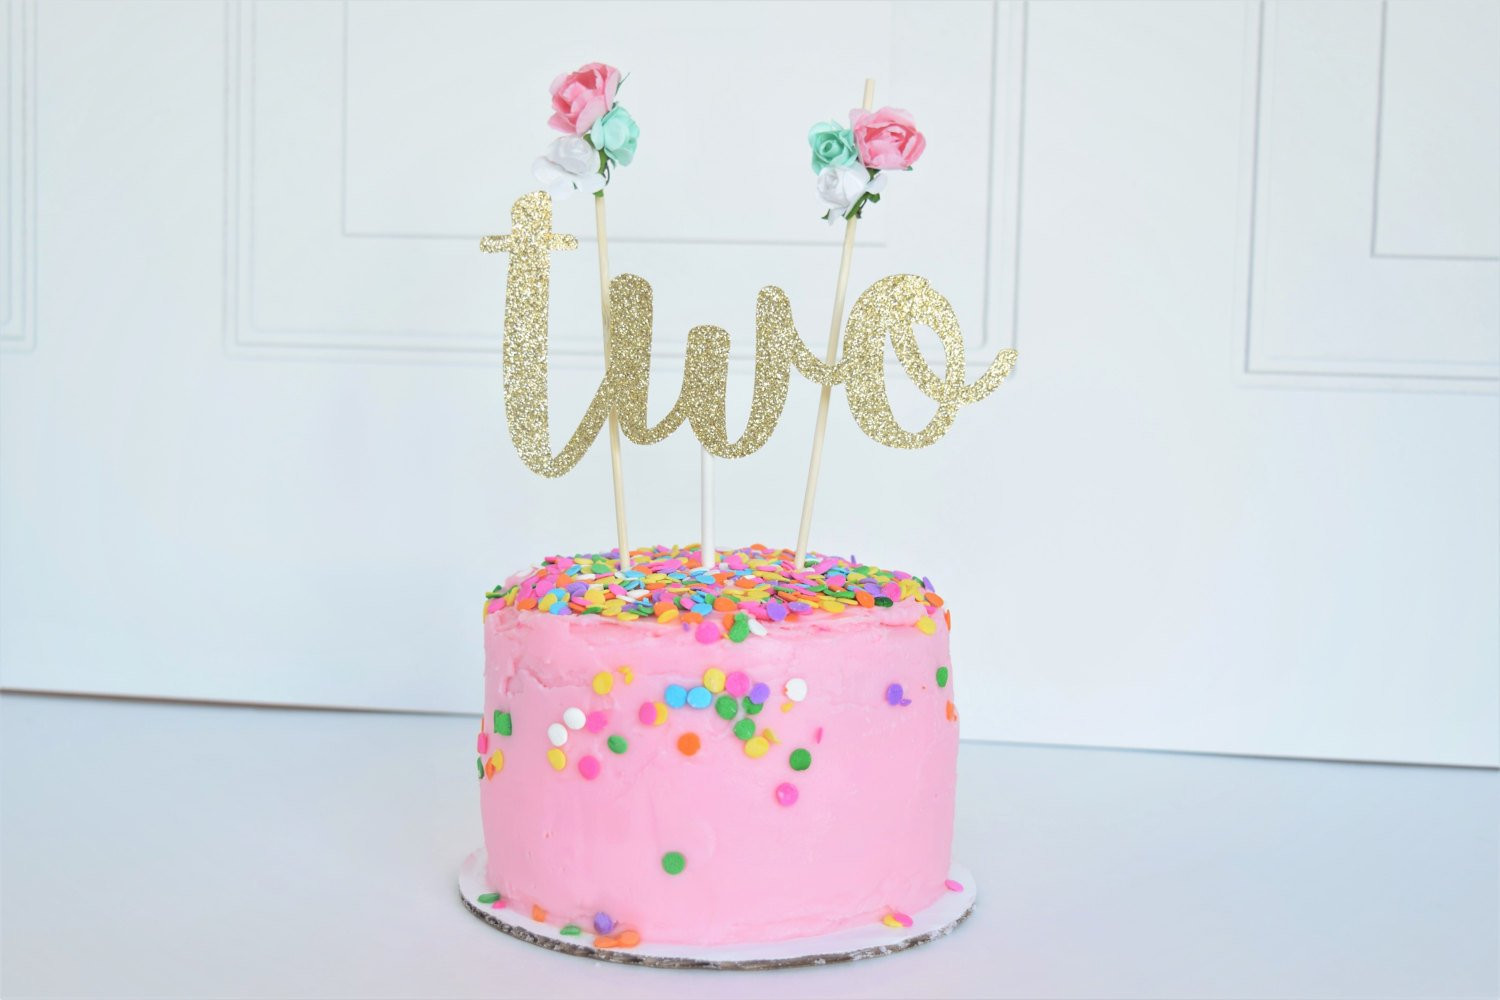 Best ideas about 2nd Birthday Cake . Save or Pin Two Cake Topper Second Birthday Cake Topper Floral Now.